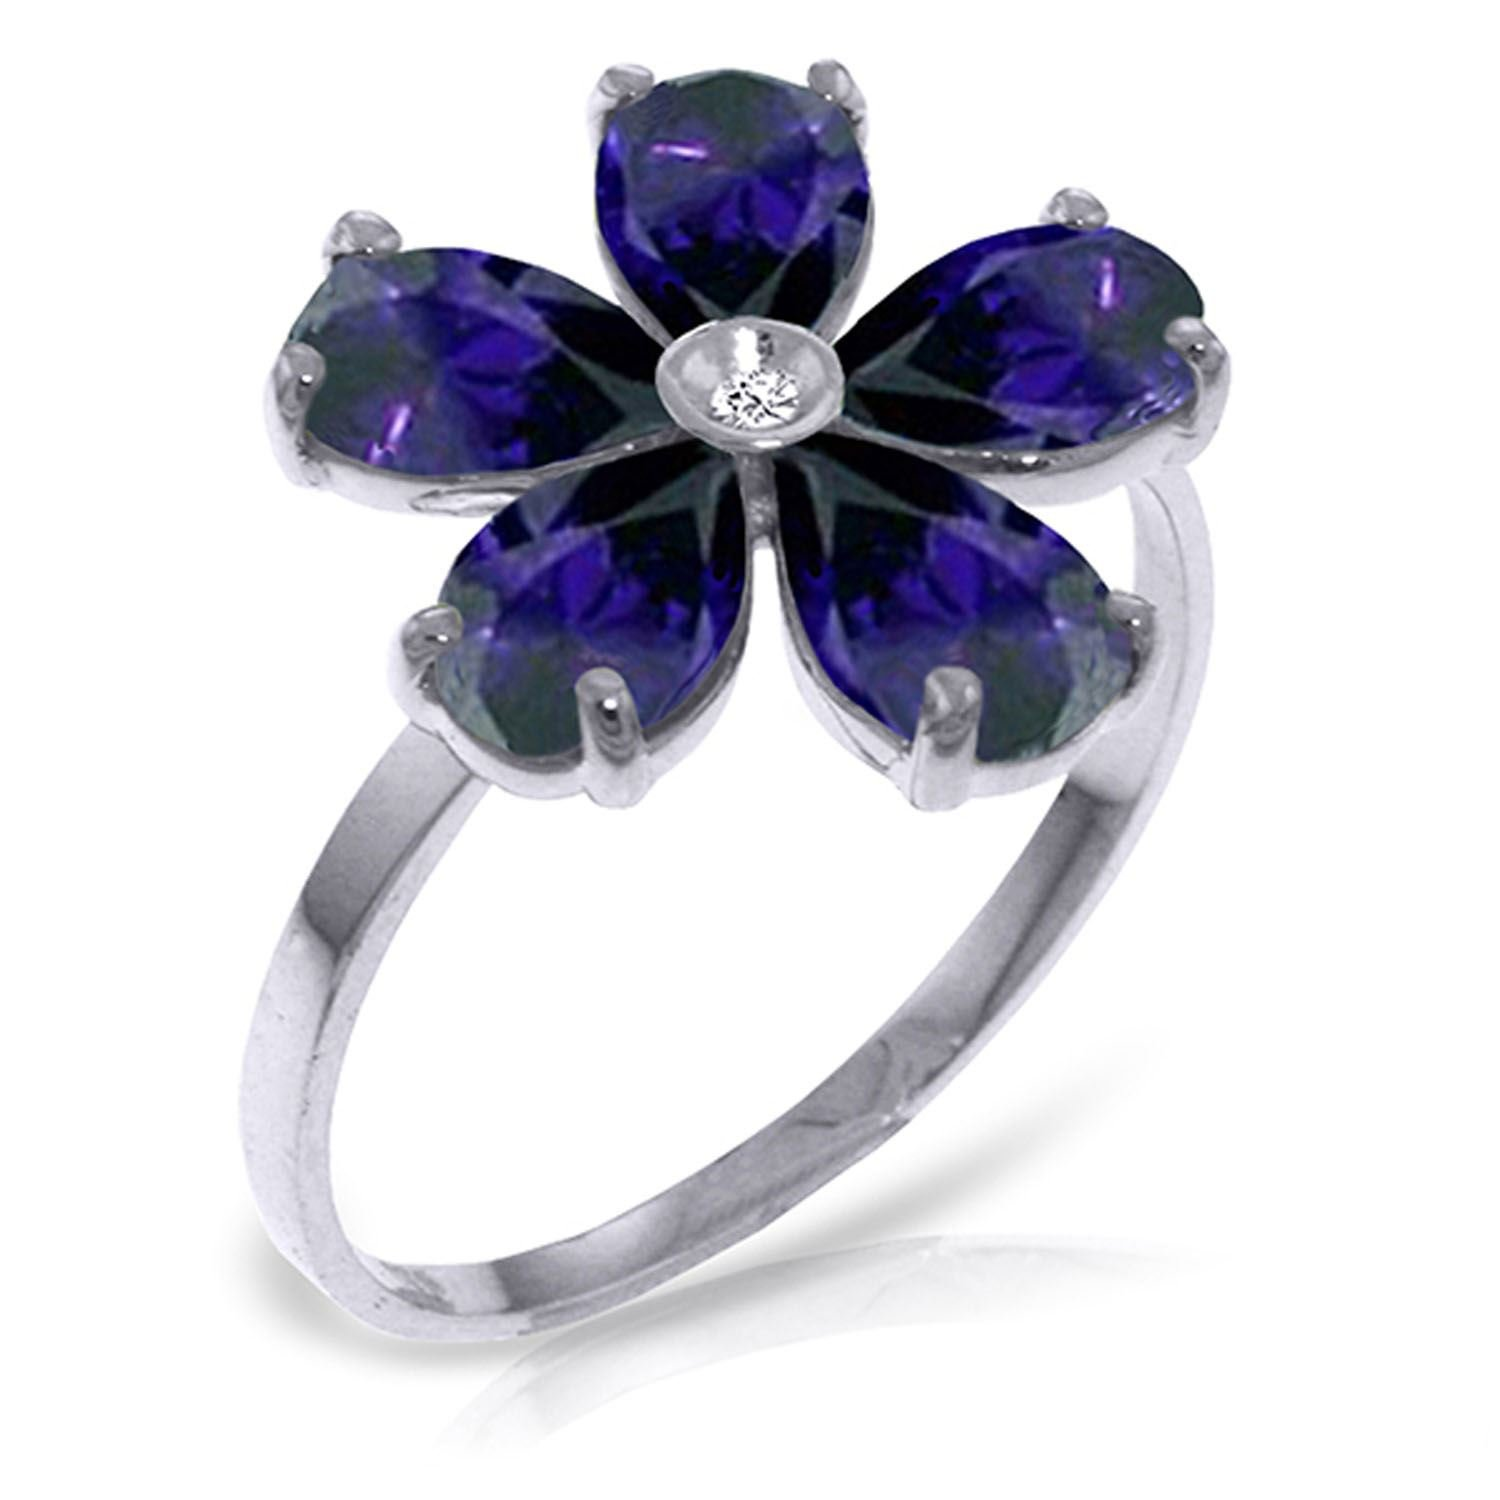 ALARRI 2.22 CTW 14K Solid White Gold Love Expands Sapphire Diamond Ring With Ring Size 9